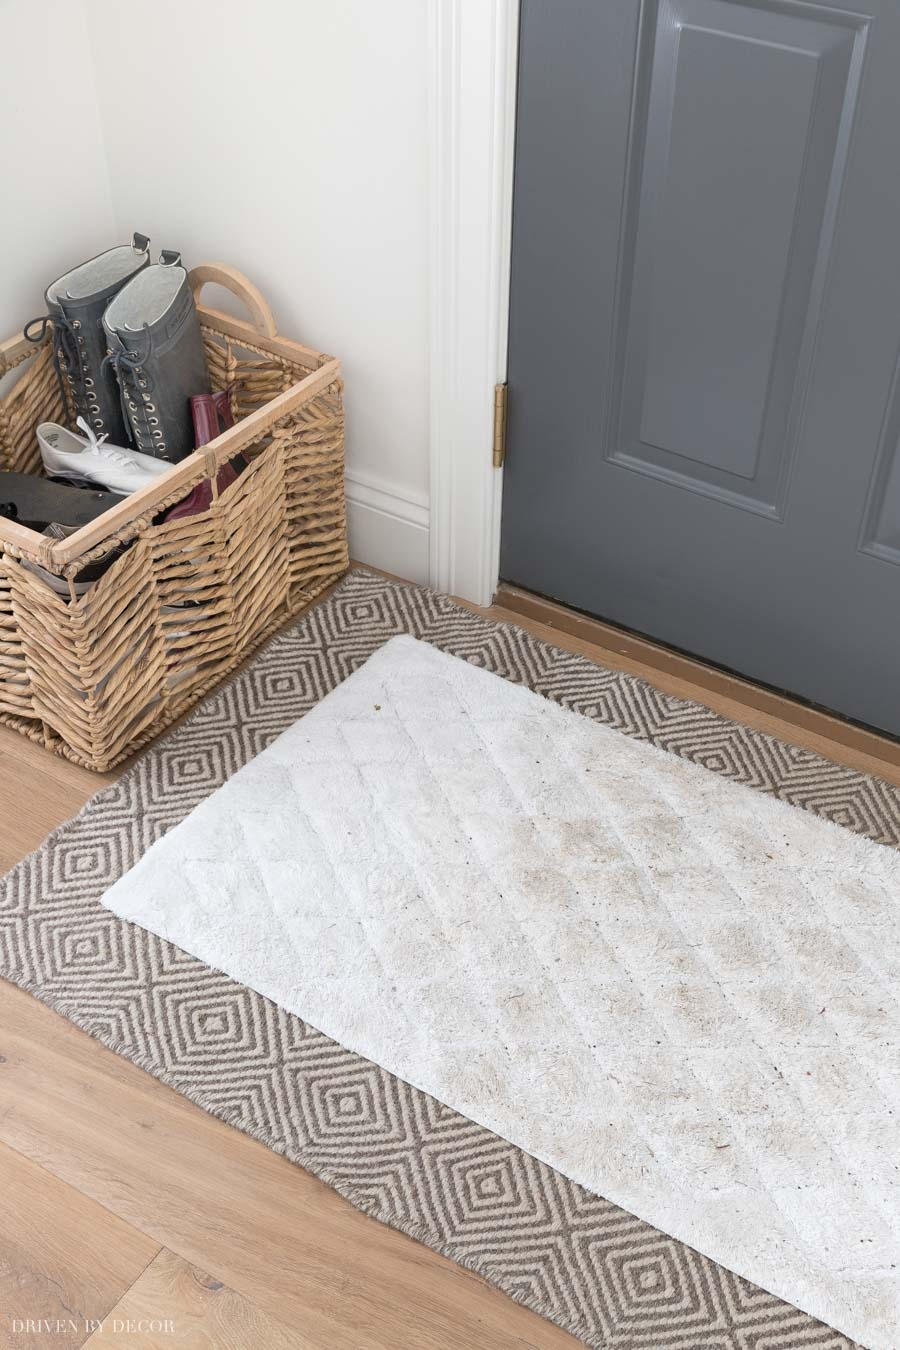 Smart idea to layer an easy to wash doormat over a patterned rug!